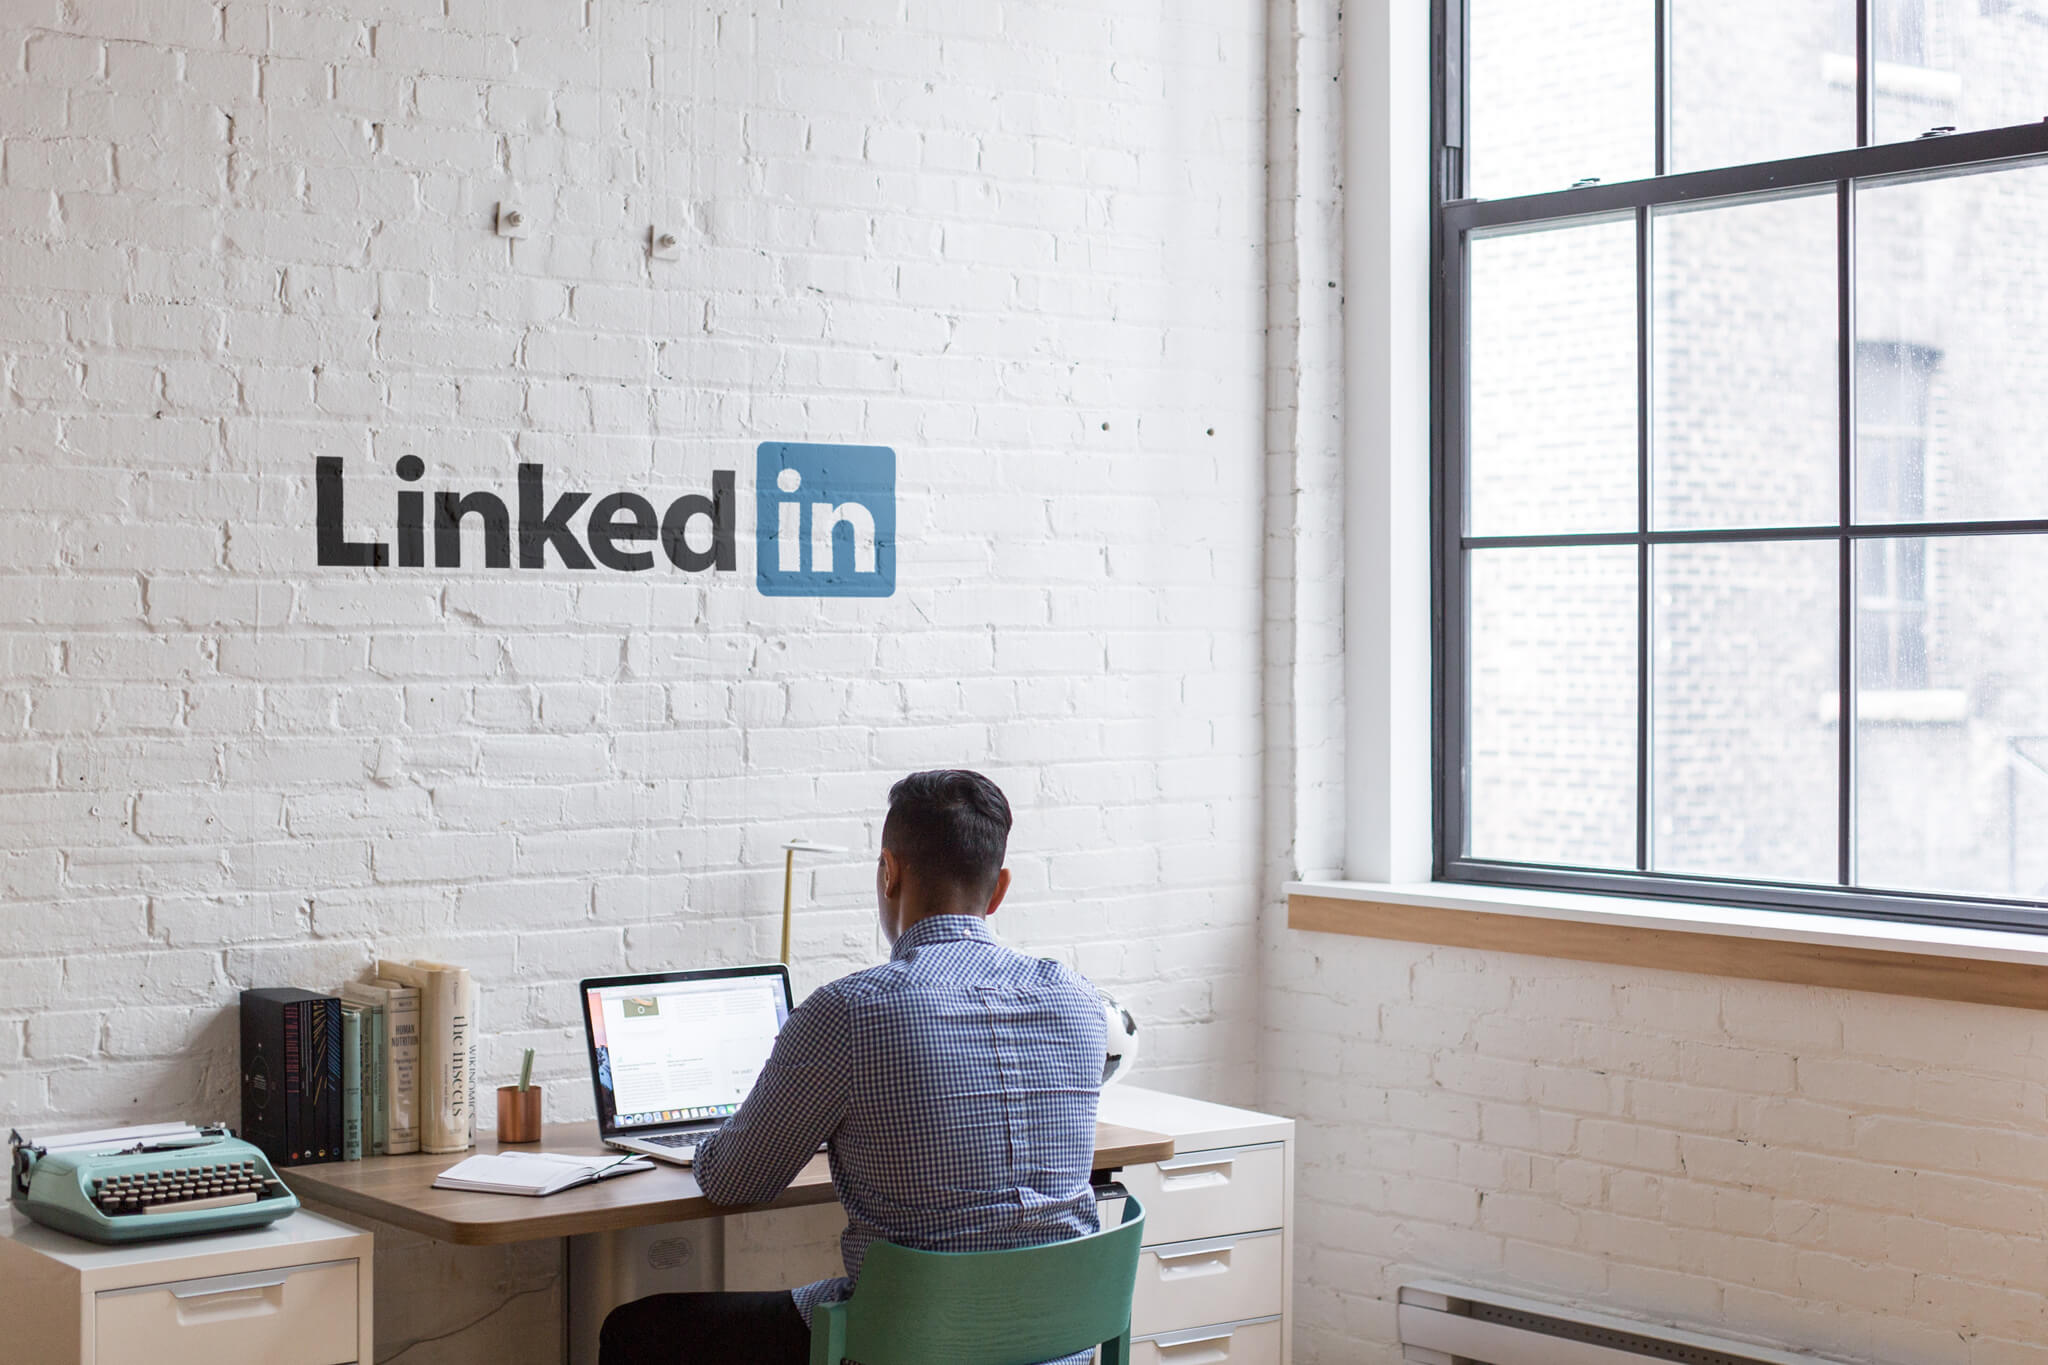 How is LinkedIn Becoming More Social?